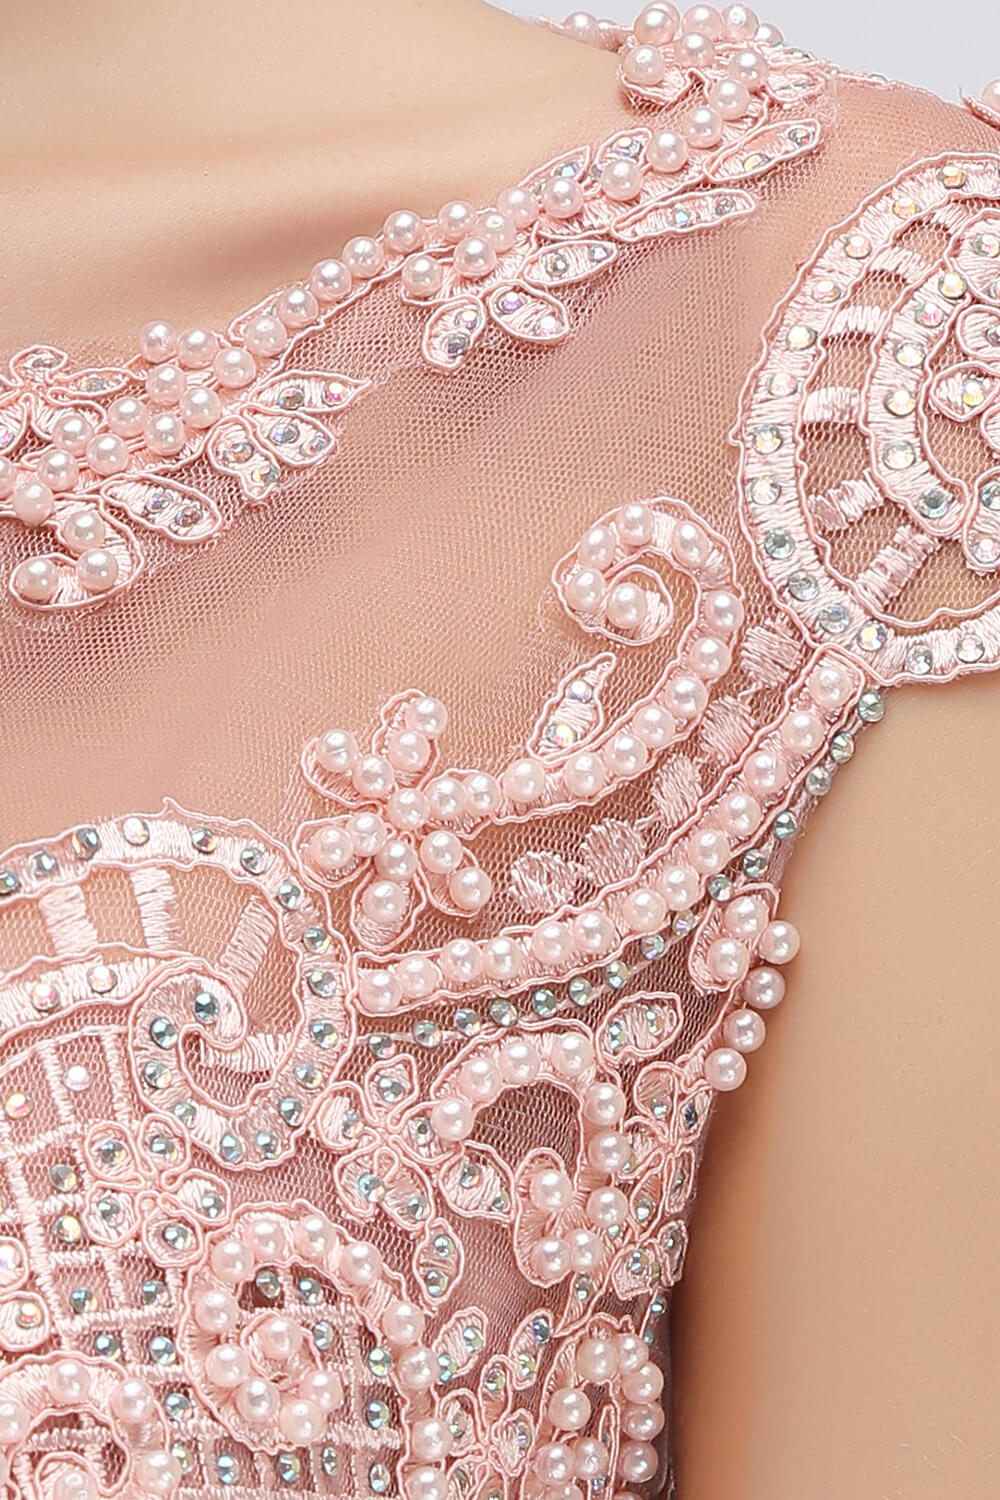 Babyonlinedress Luxury Crystal And Pearls Decorated Evening Dress 2019 Fashion Design Floor Length Chiffon Lace Formal Dresses